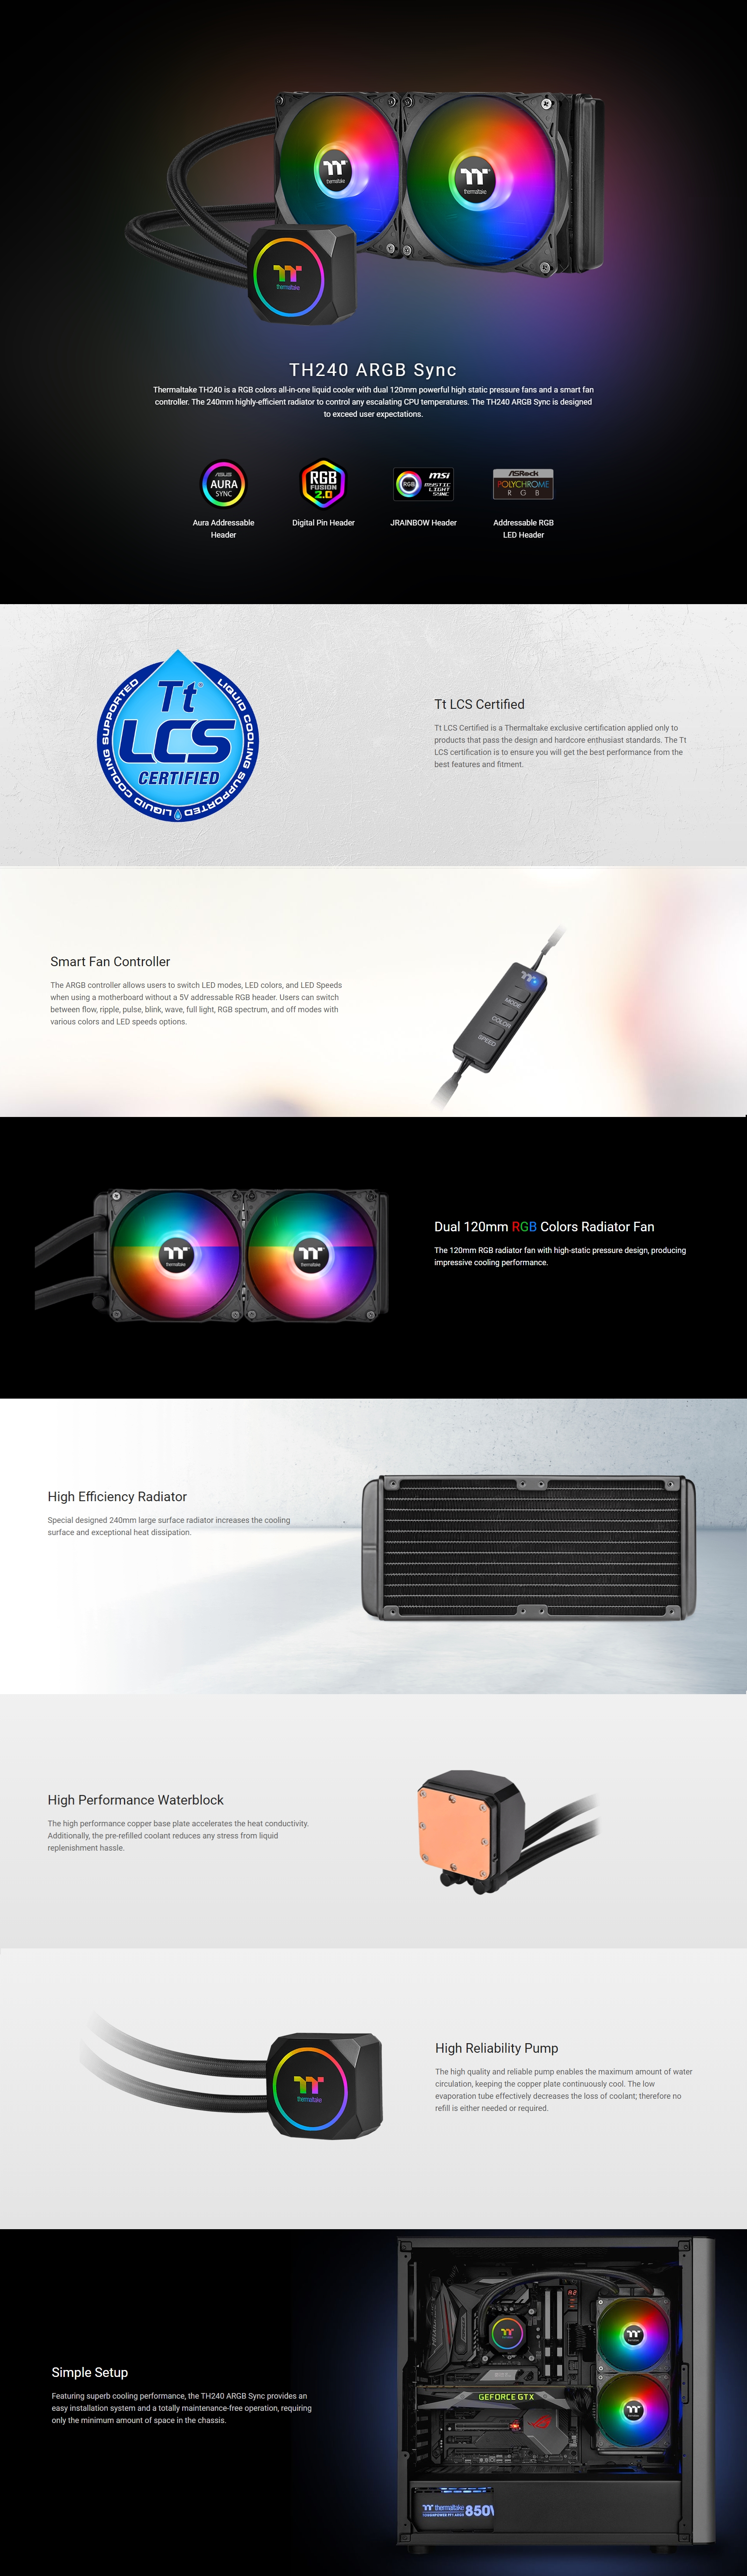 A large marketing image providing additional information about the product Thermaltake TH240 ARGB AIO Liquid CPU Cooler - Additional alt info not provided